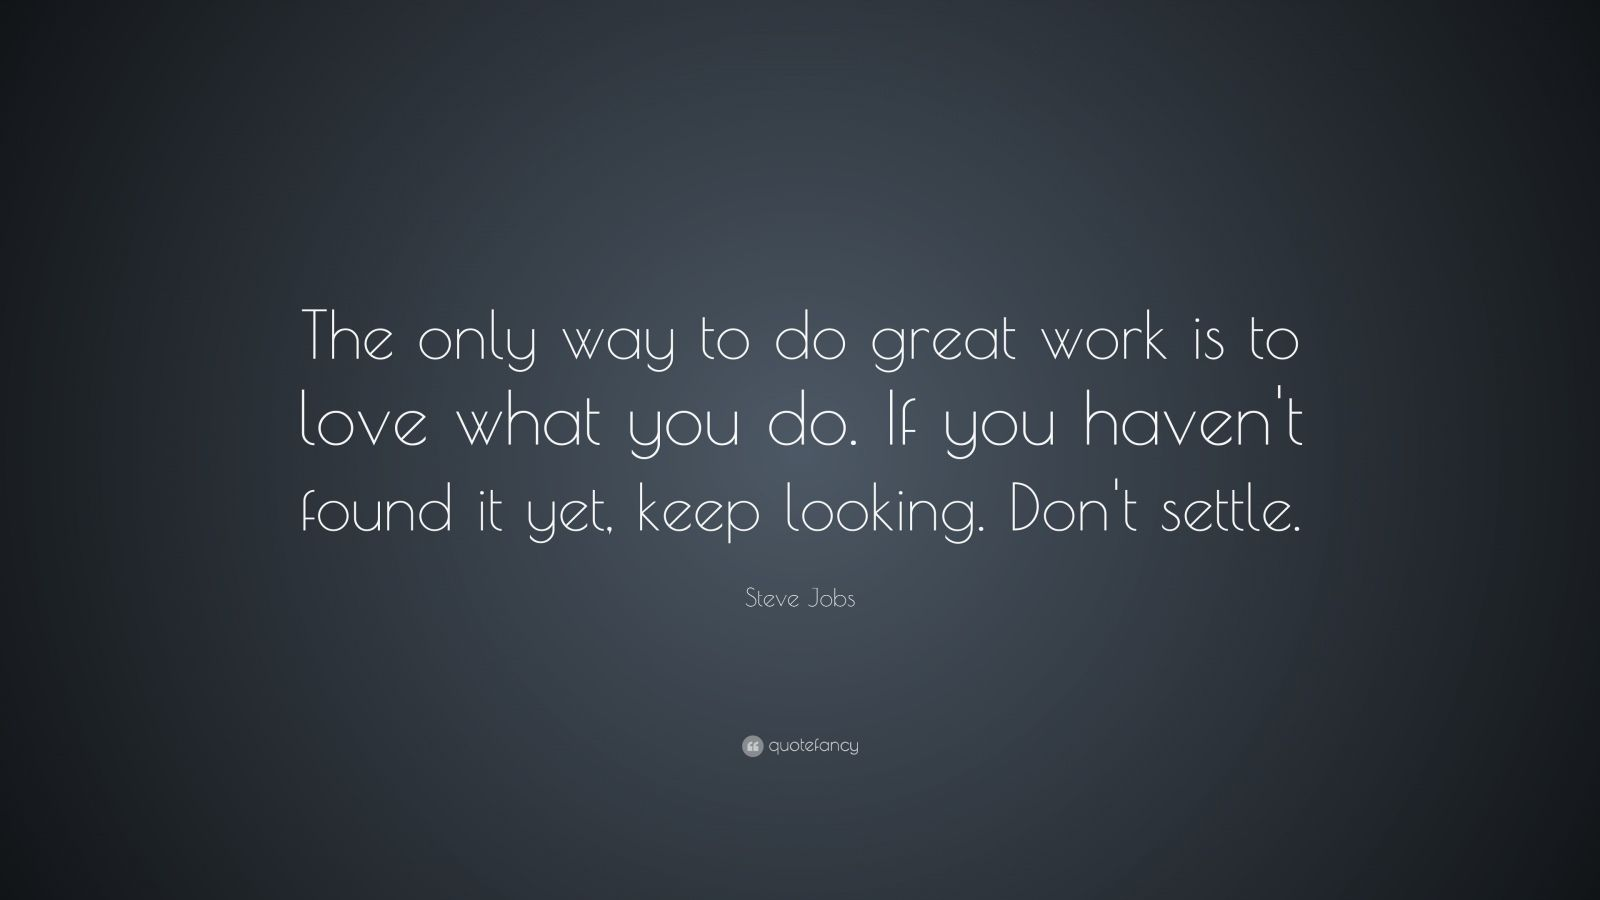 Steve Jobs Quotes (29 Wallpapers)